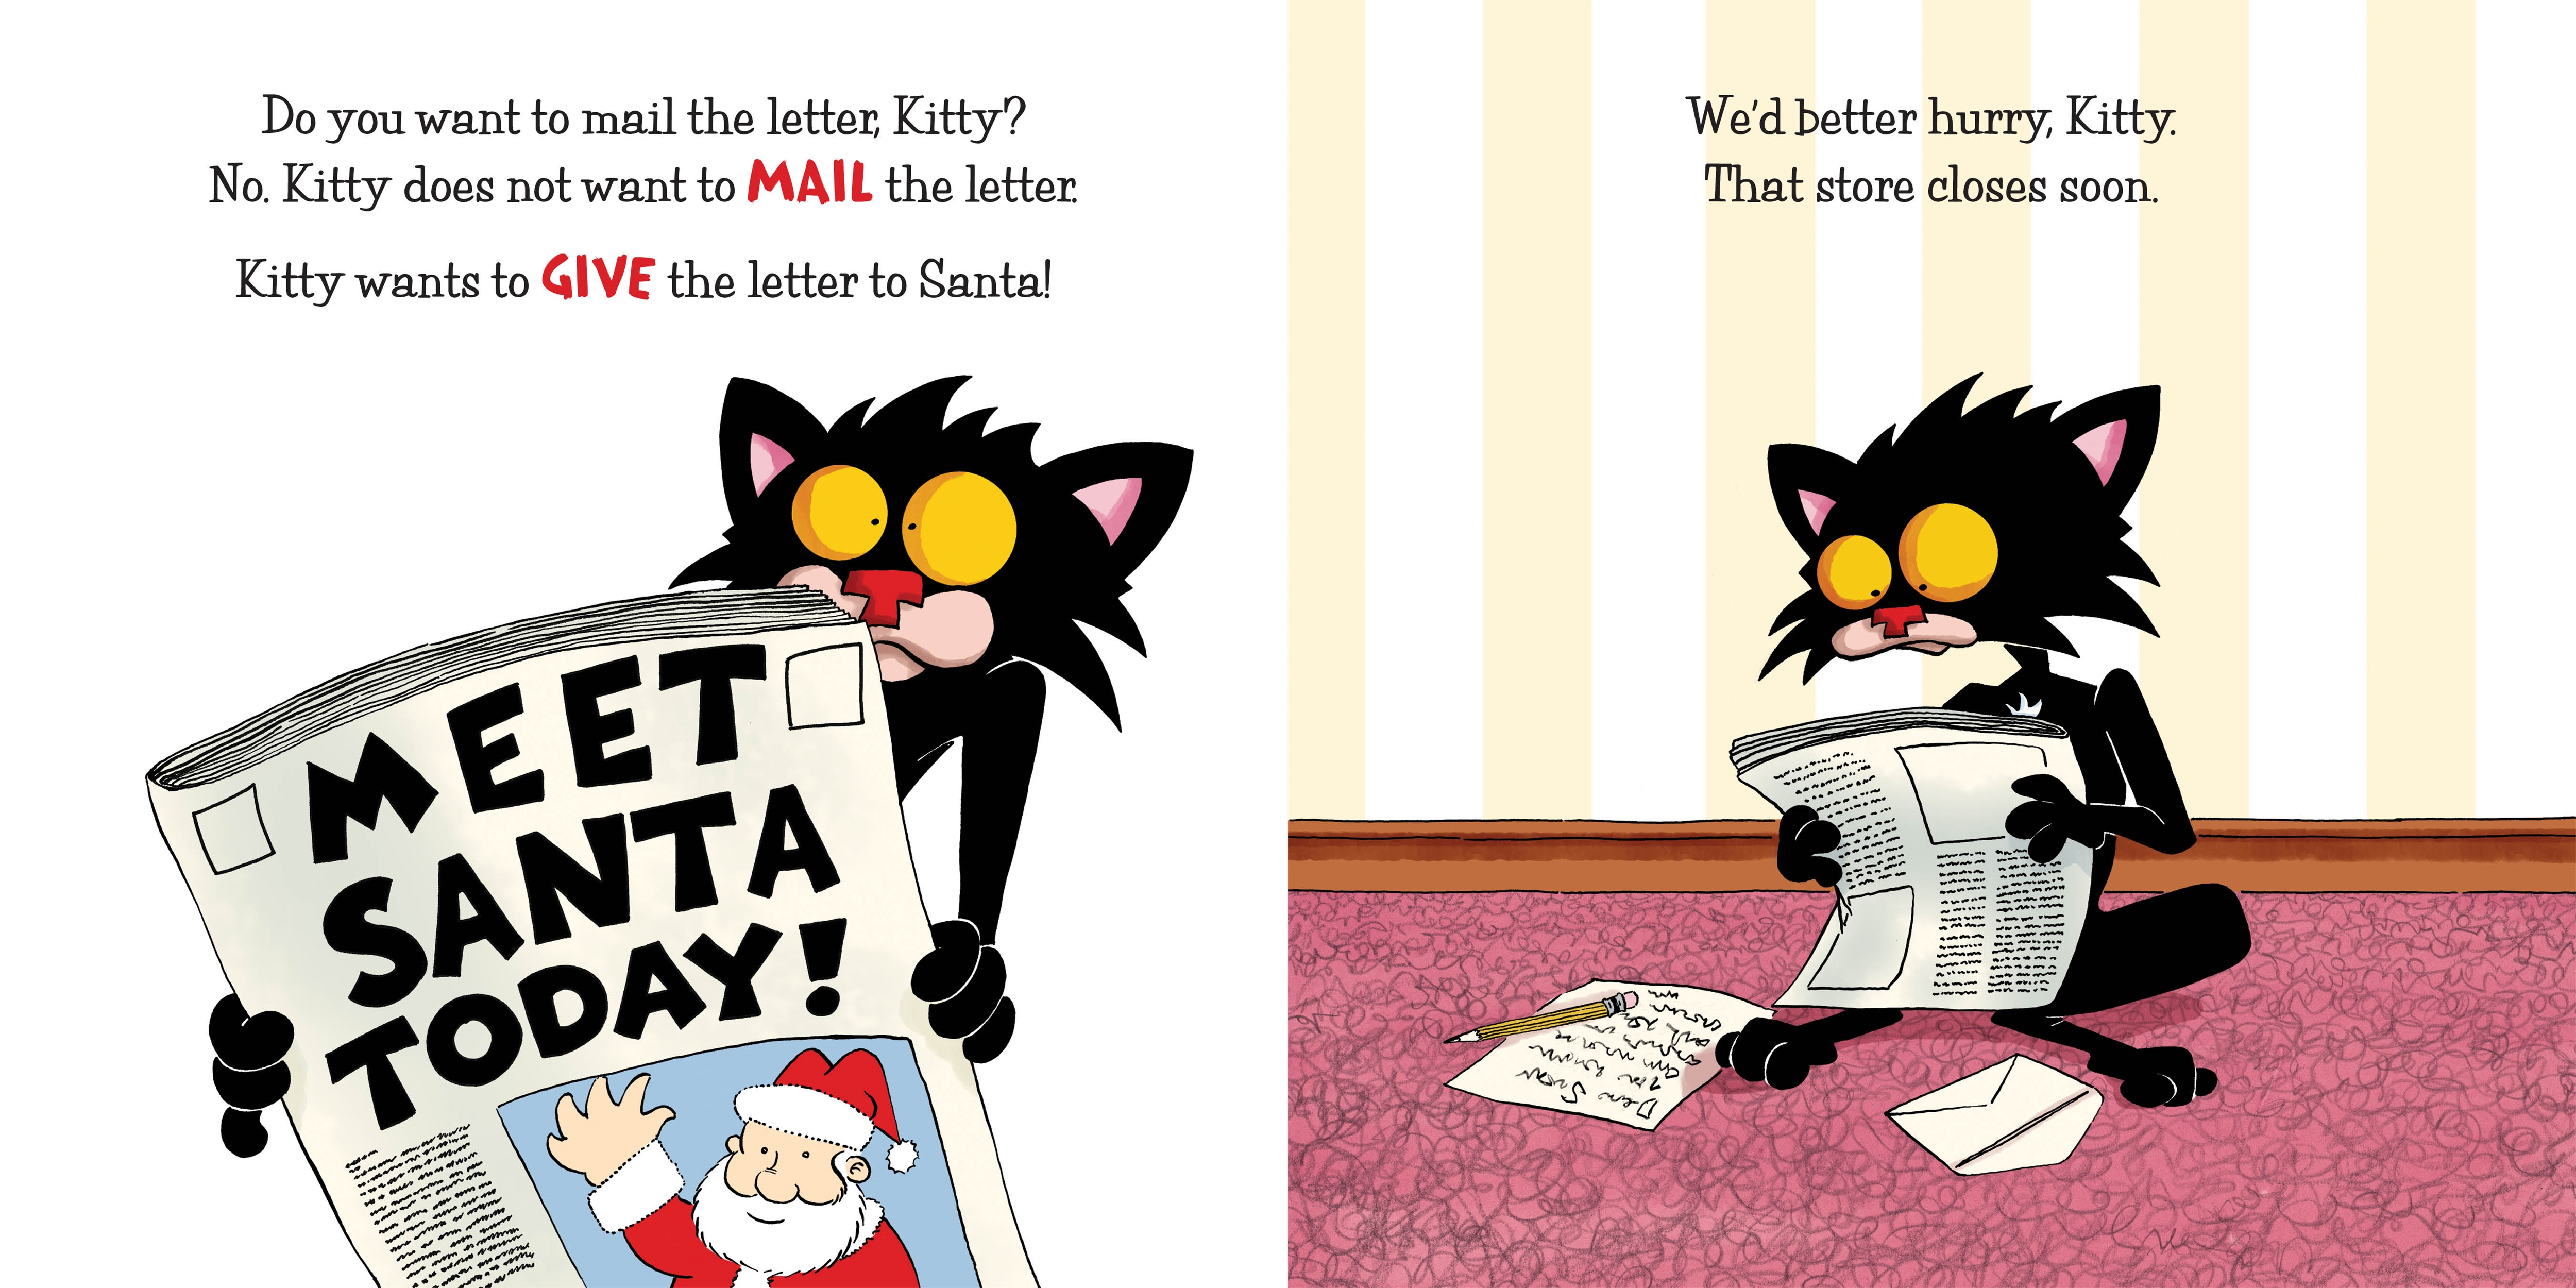 Interior book image for Bad Kitty: Searching for Santa